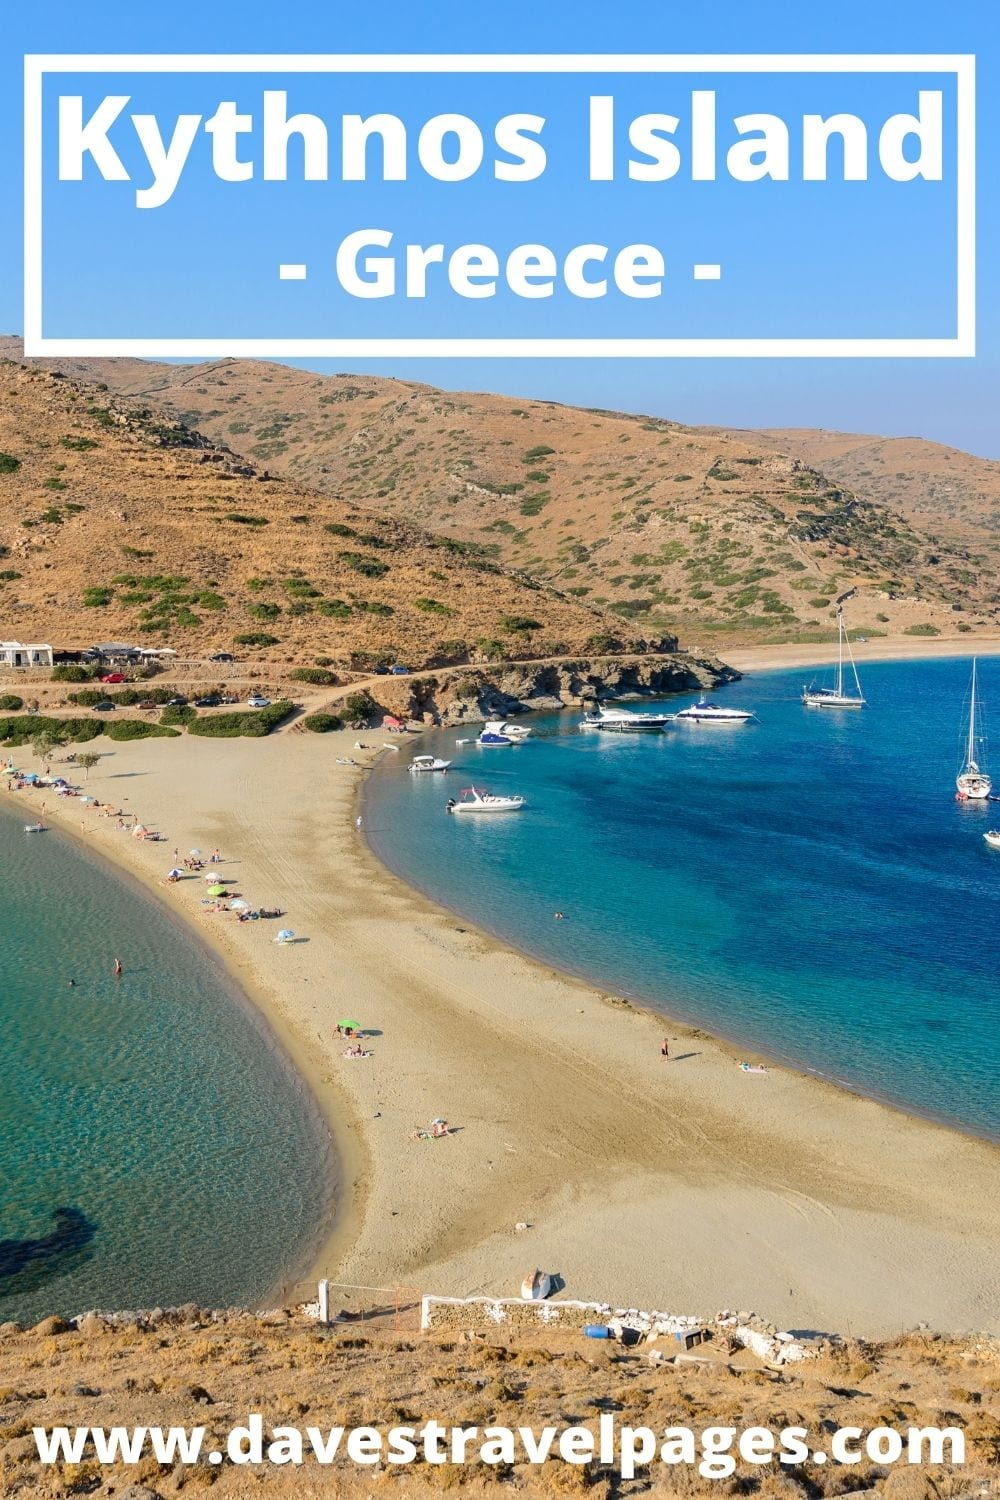 The best way to get to Kythnos island from Santorini in Greece